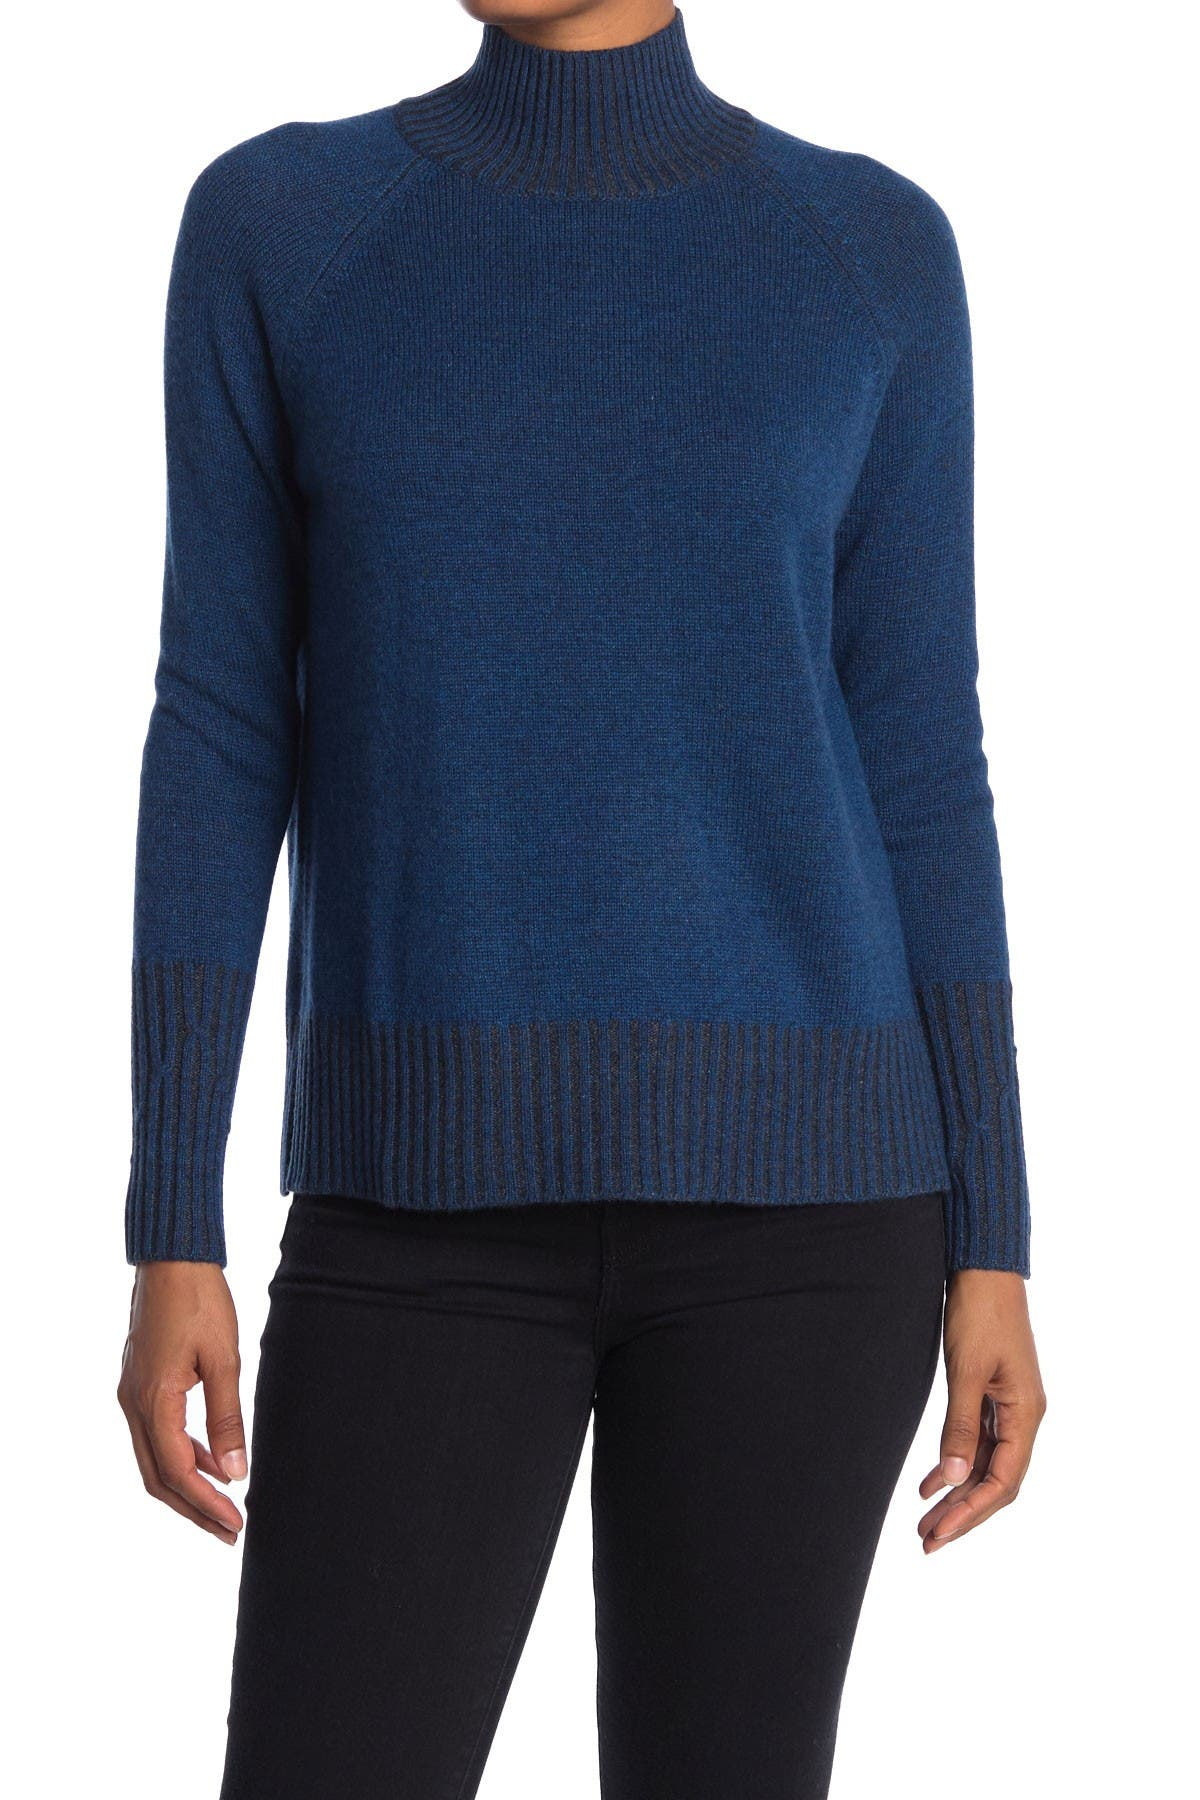 Image of Kinross Mock Neck Cashmere Pullover Sweater